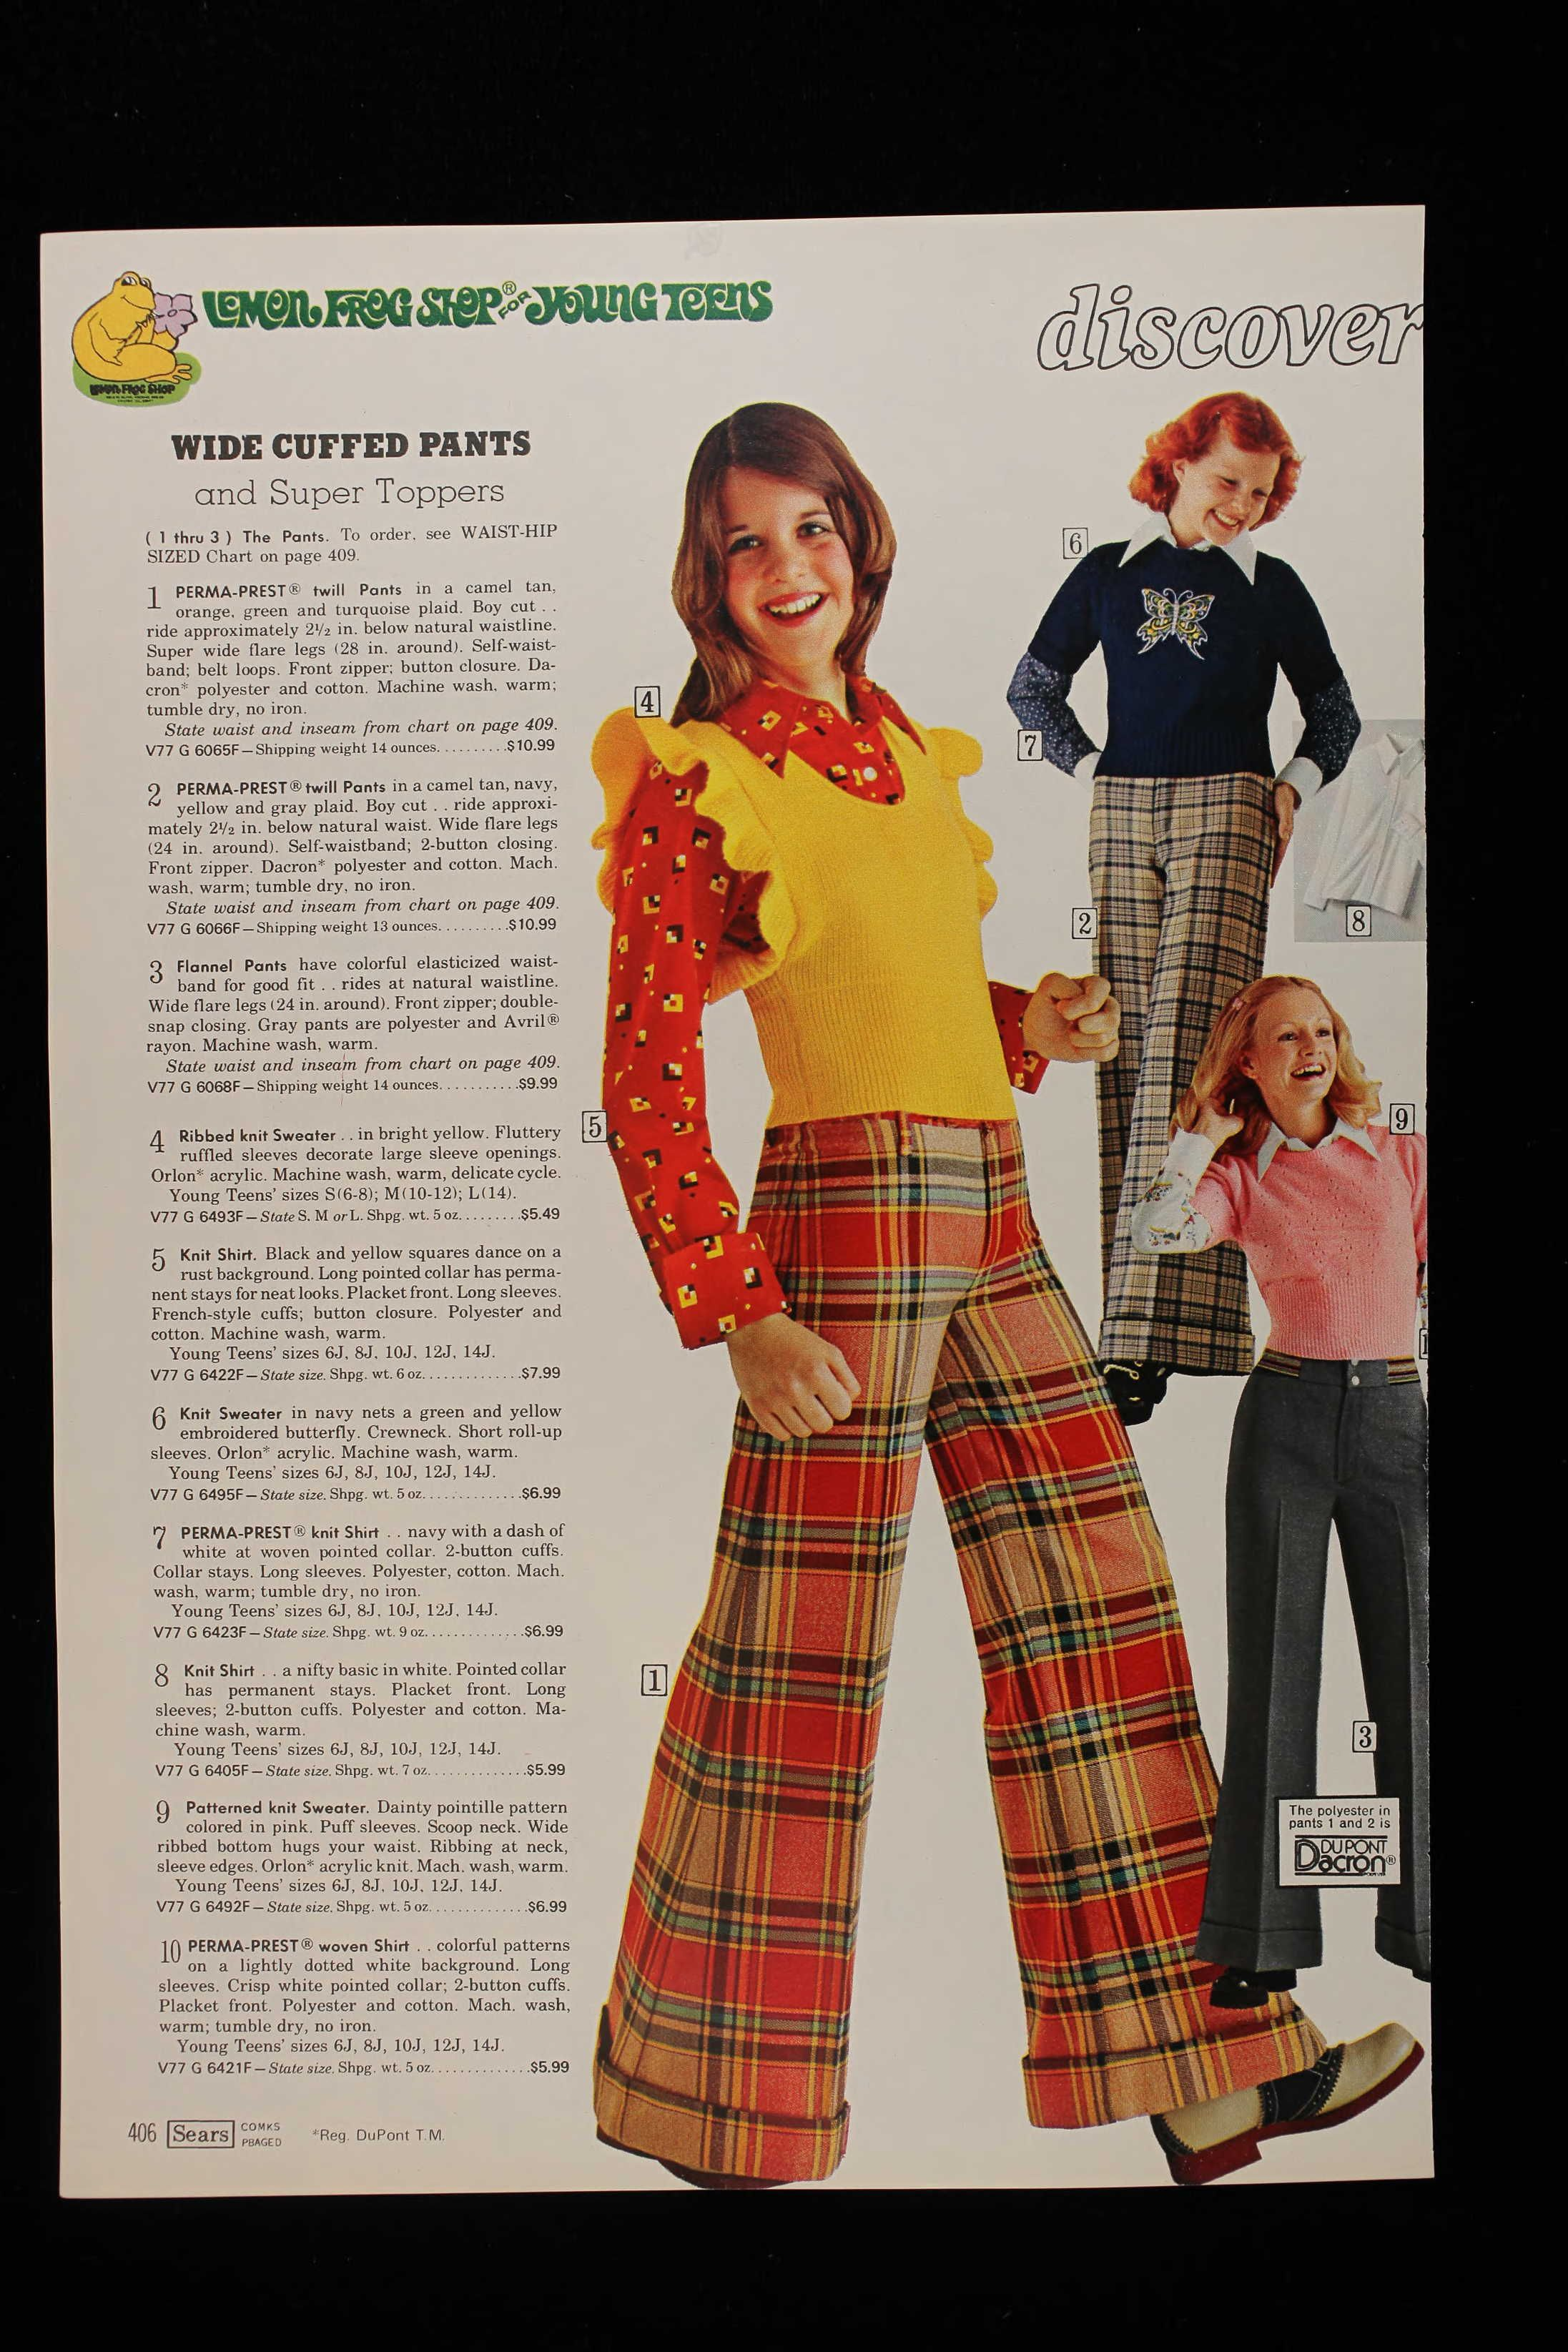 11 Unbelievable Items from the Sears Catalog - Anc